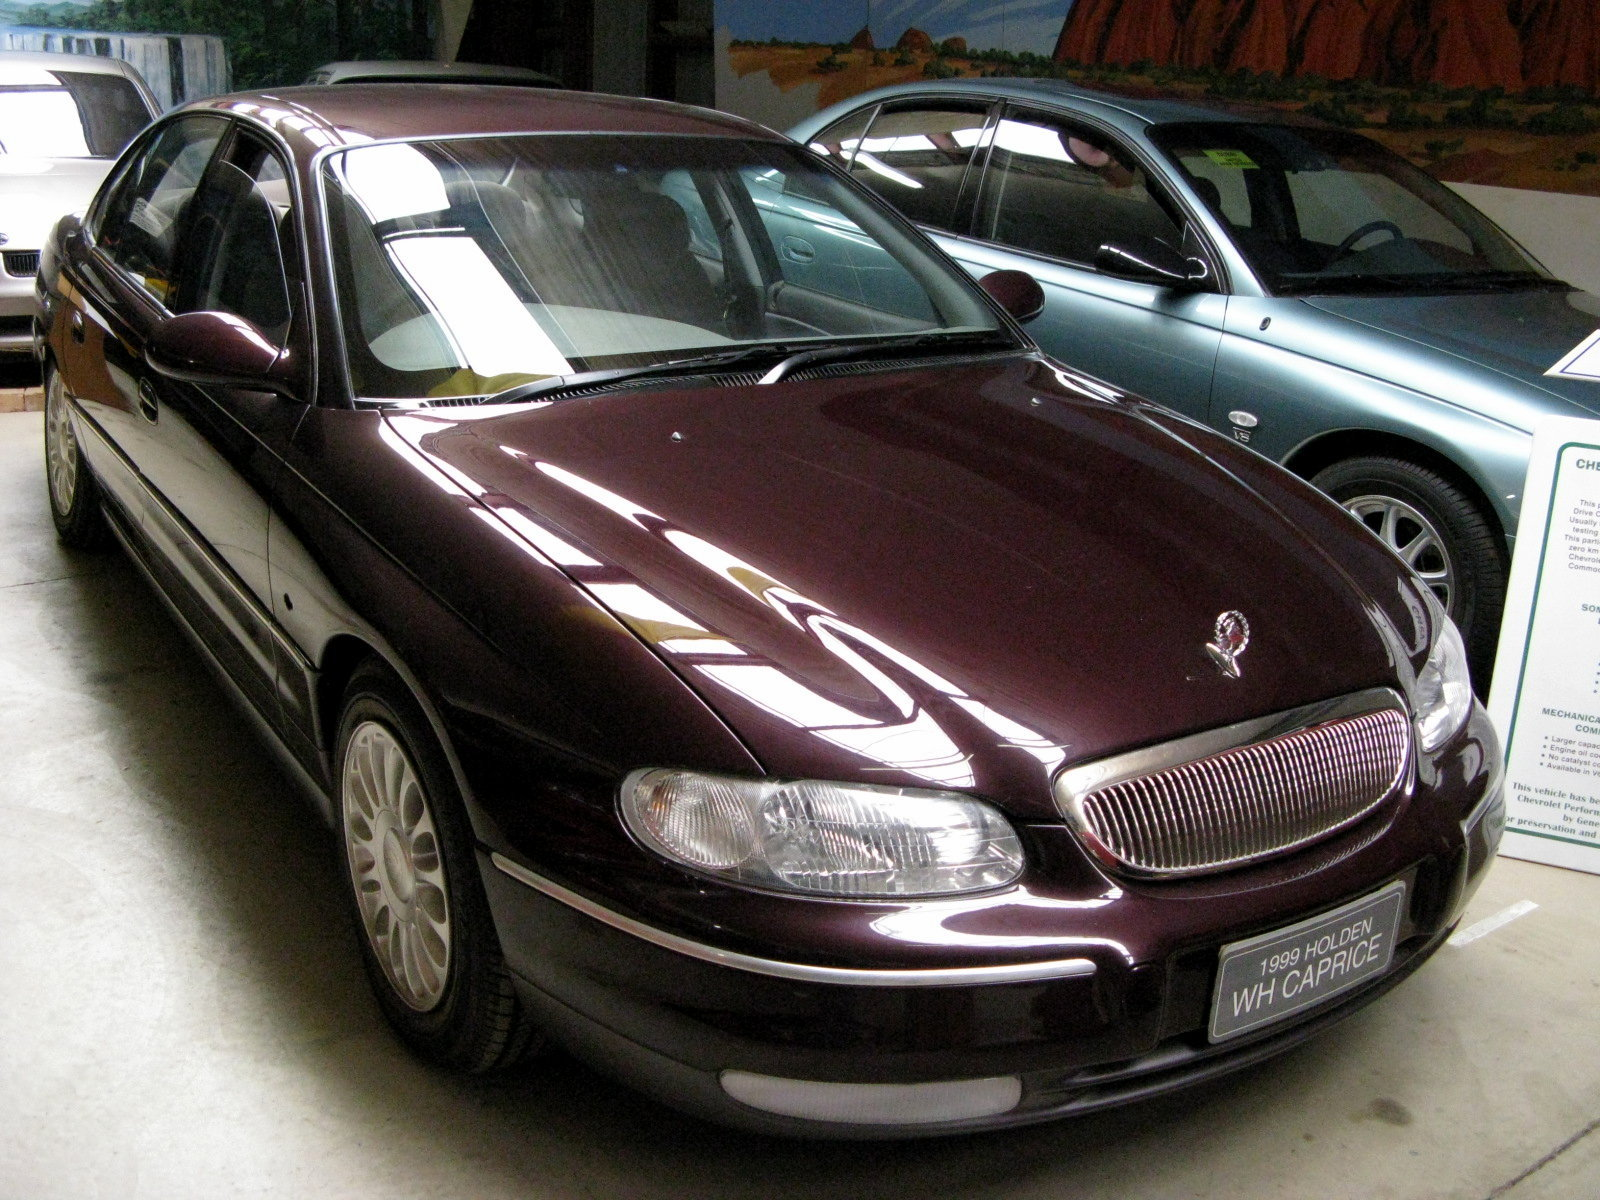 Cars holden caprice (vh) 2005 #9